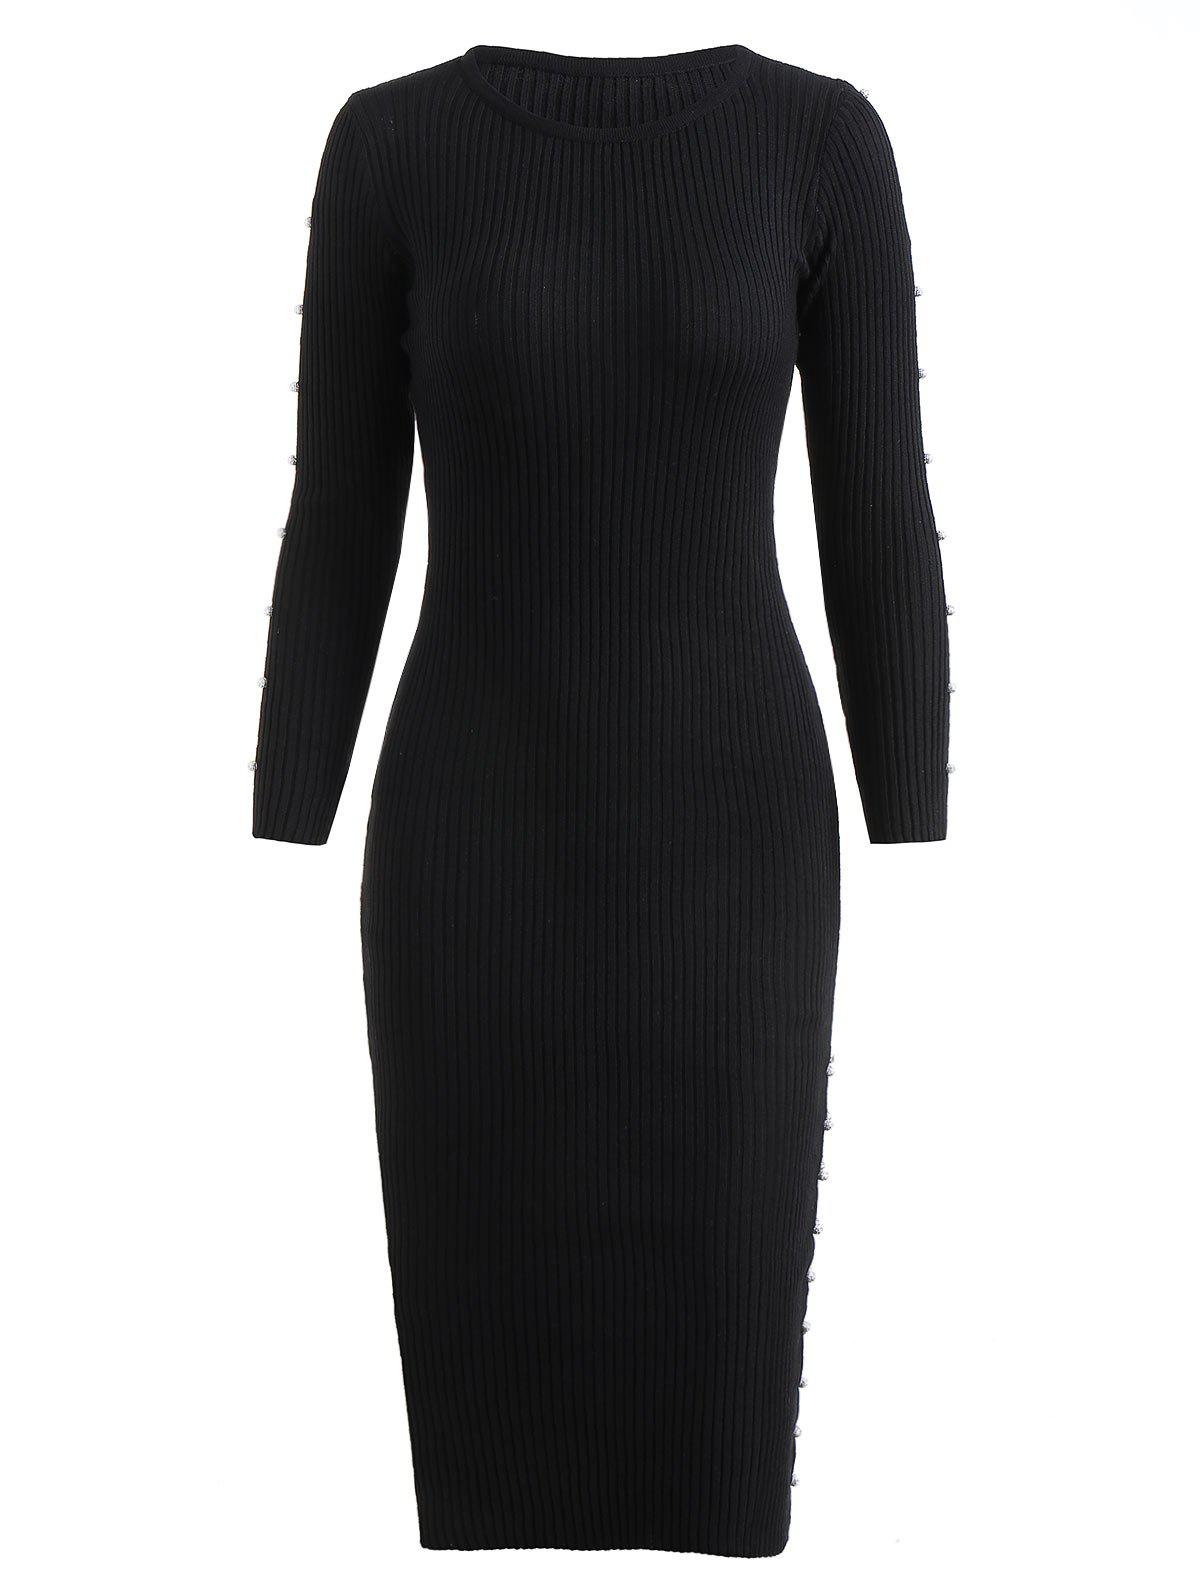 Buy Rhinestoned Balls Full Sleeve Knit Bodycon Dress